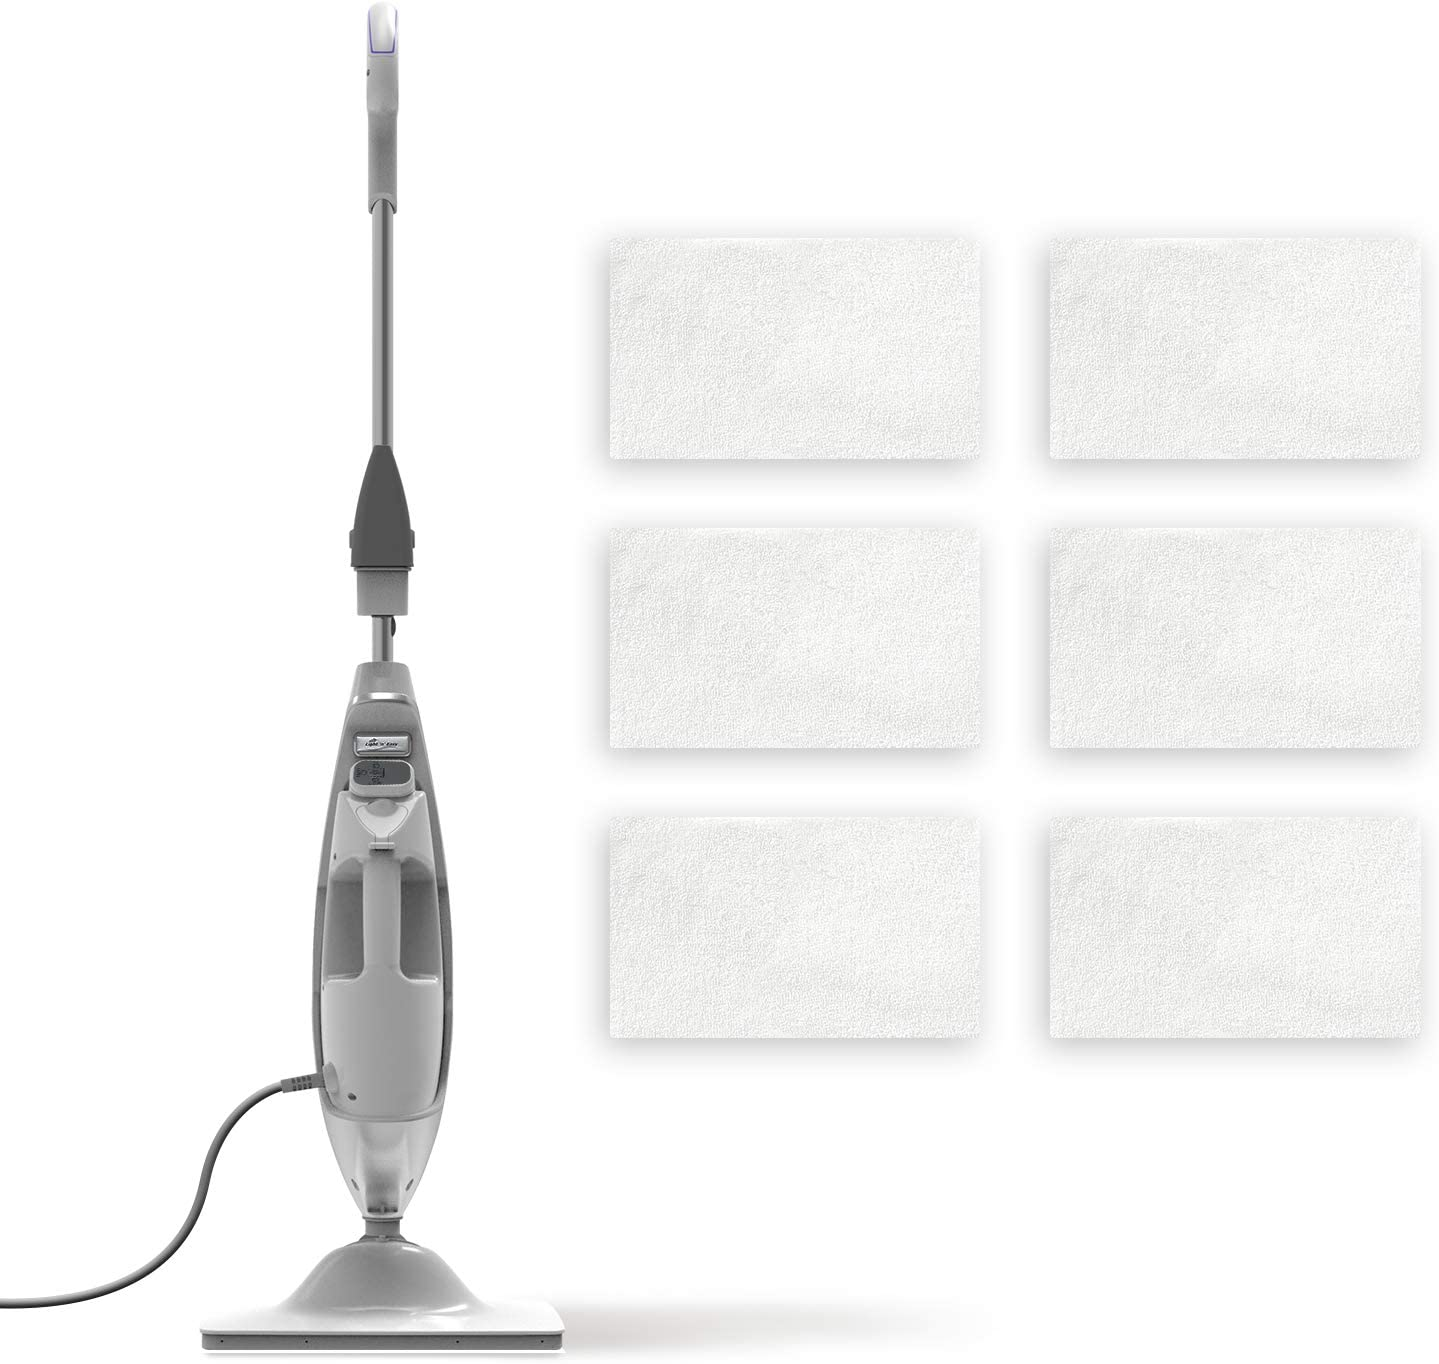 LIGHT 'N' EASY Steam Mop,Steam Cleaner with Detachable Handheld Unit Floor Steamer Cleaner for Hardwood,Grout,Tile,7688ANW+7pcs Steam Mop Pads